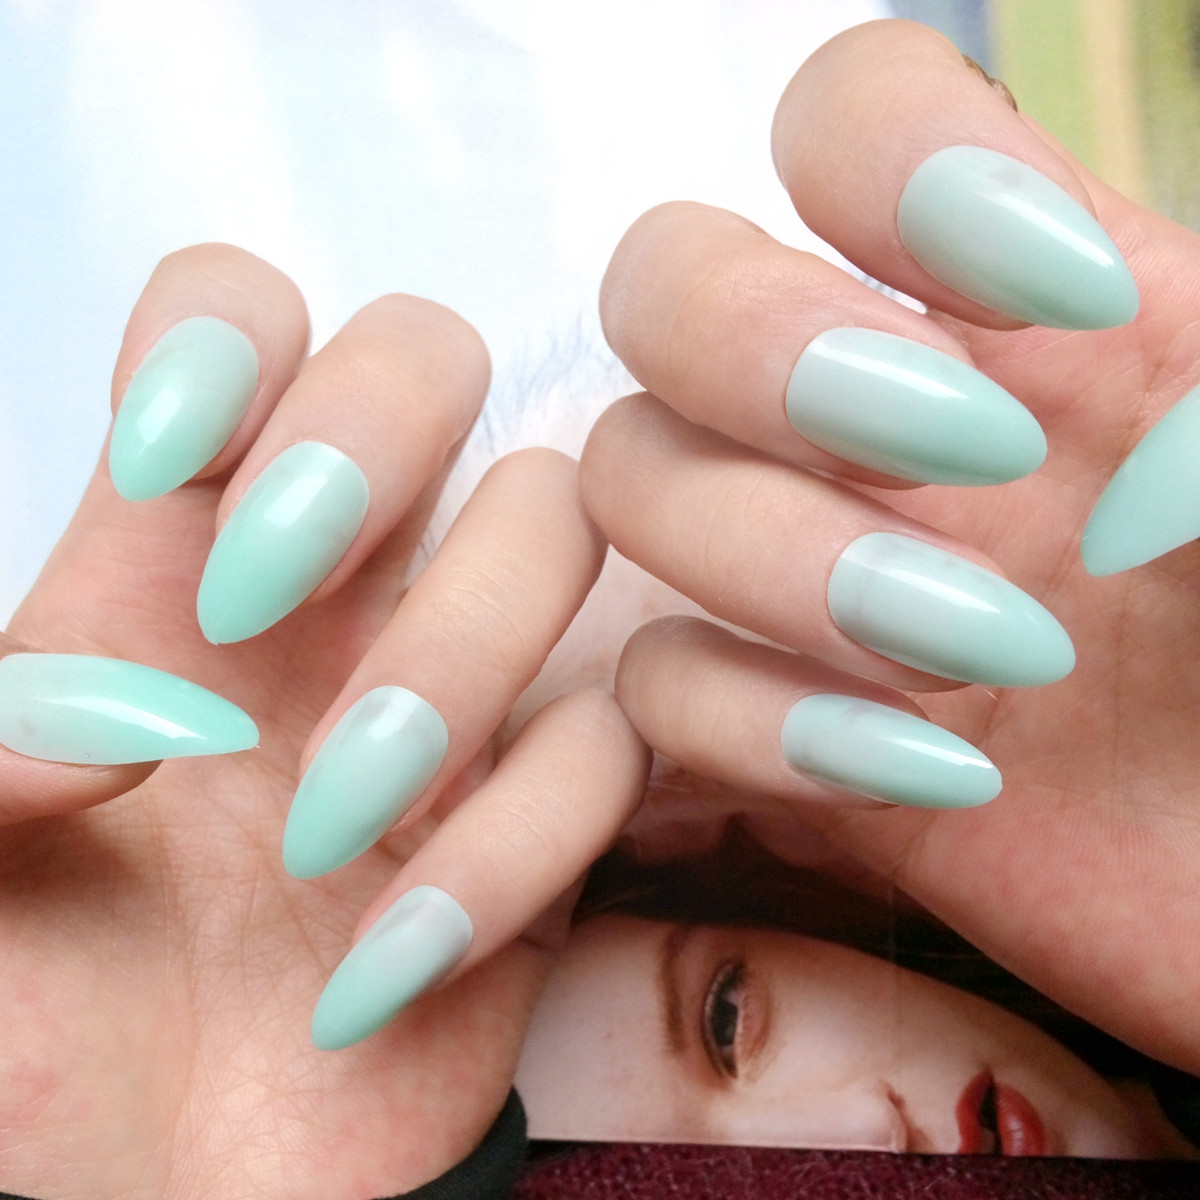 Candy Light Green False Nails Short Stiletto Nails Tips Pointed Fake ...